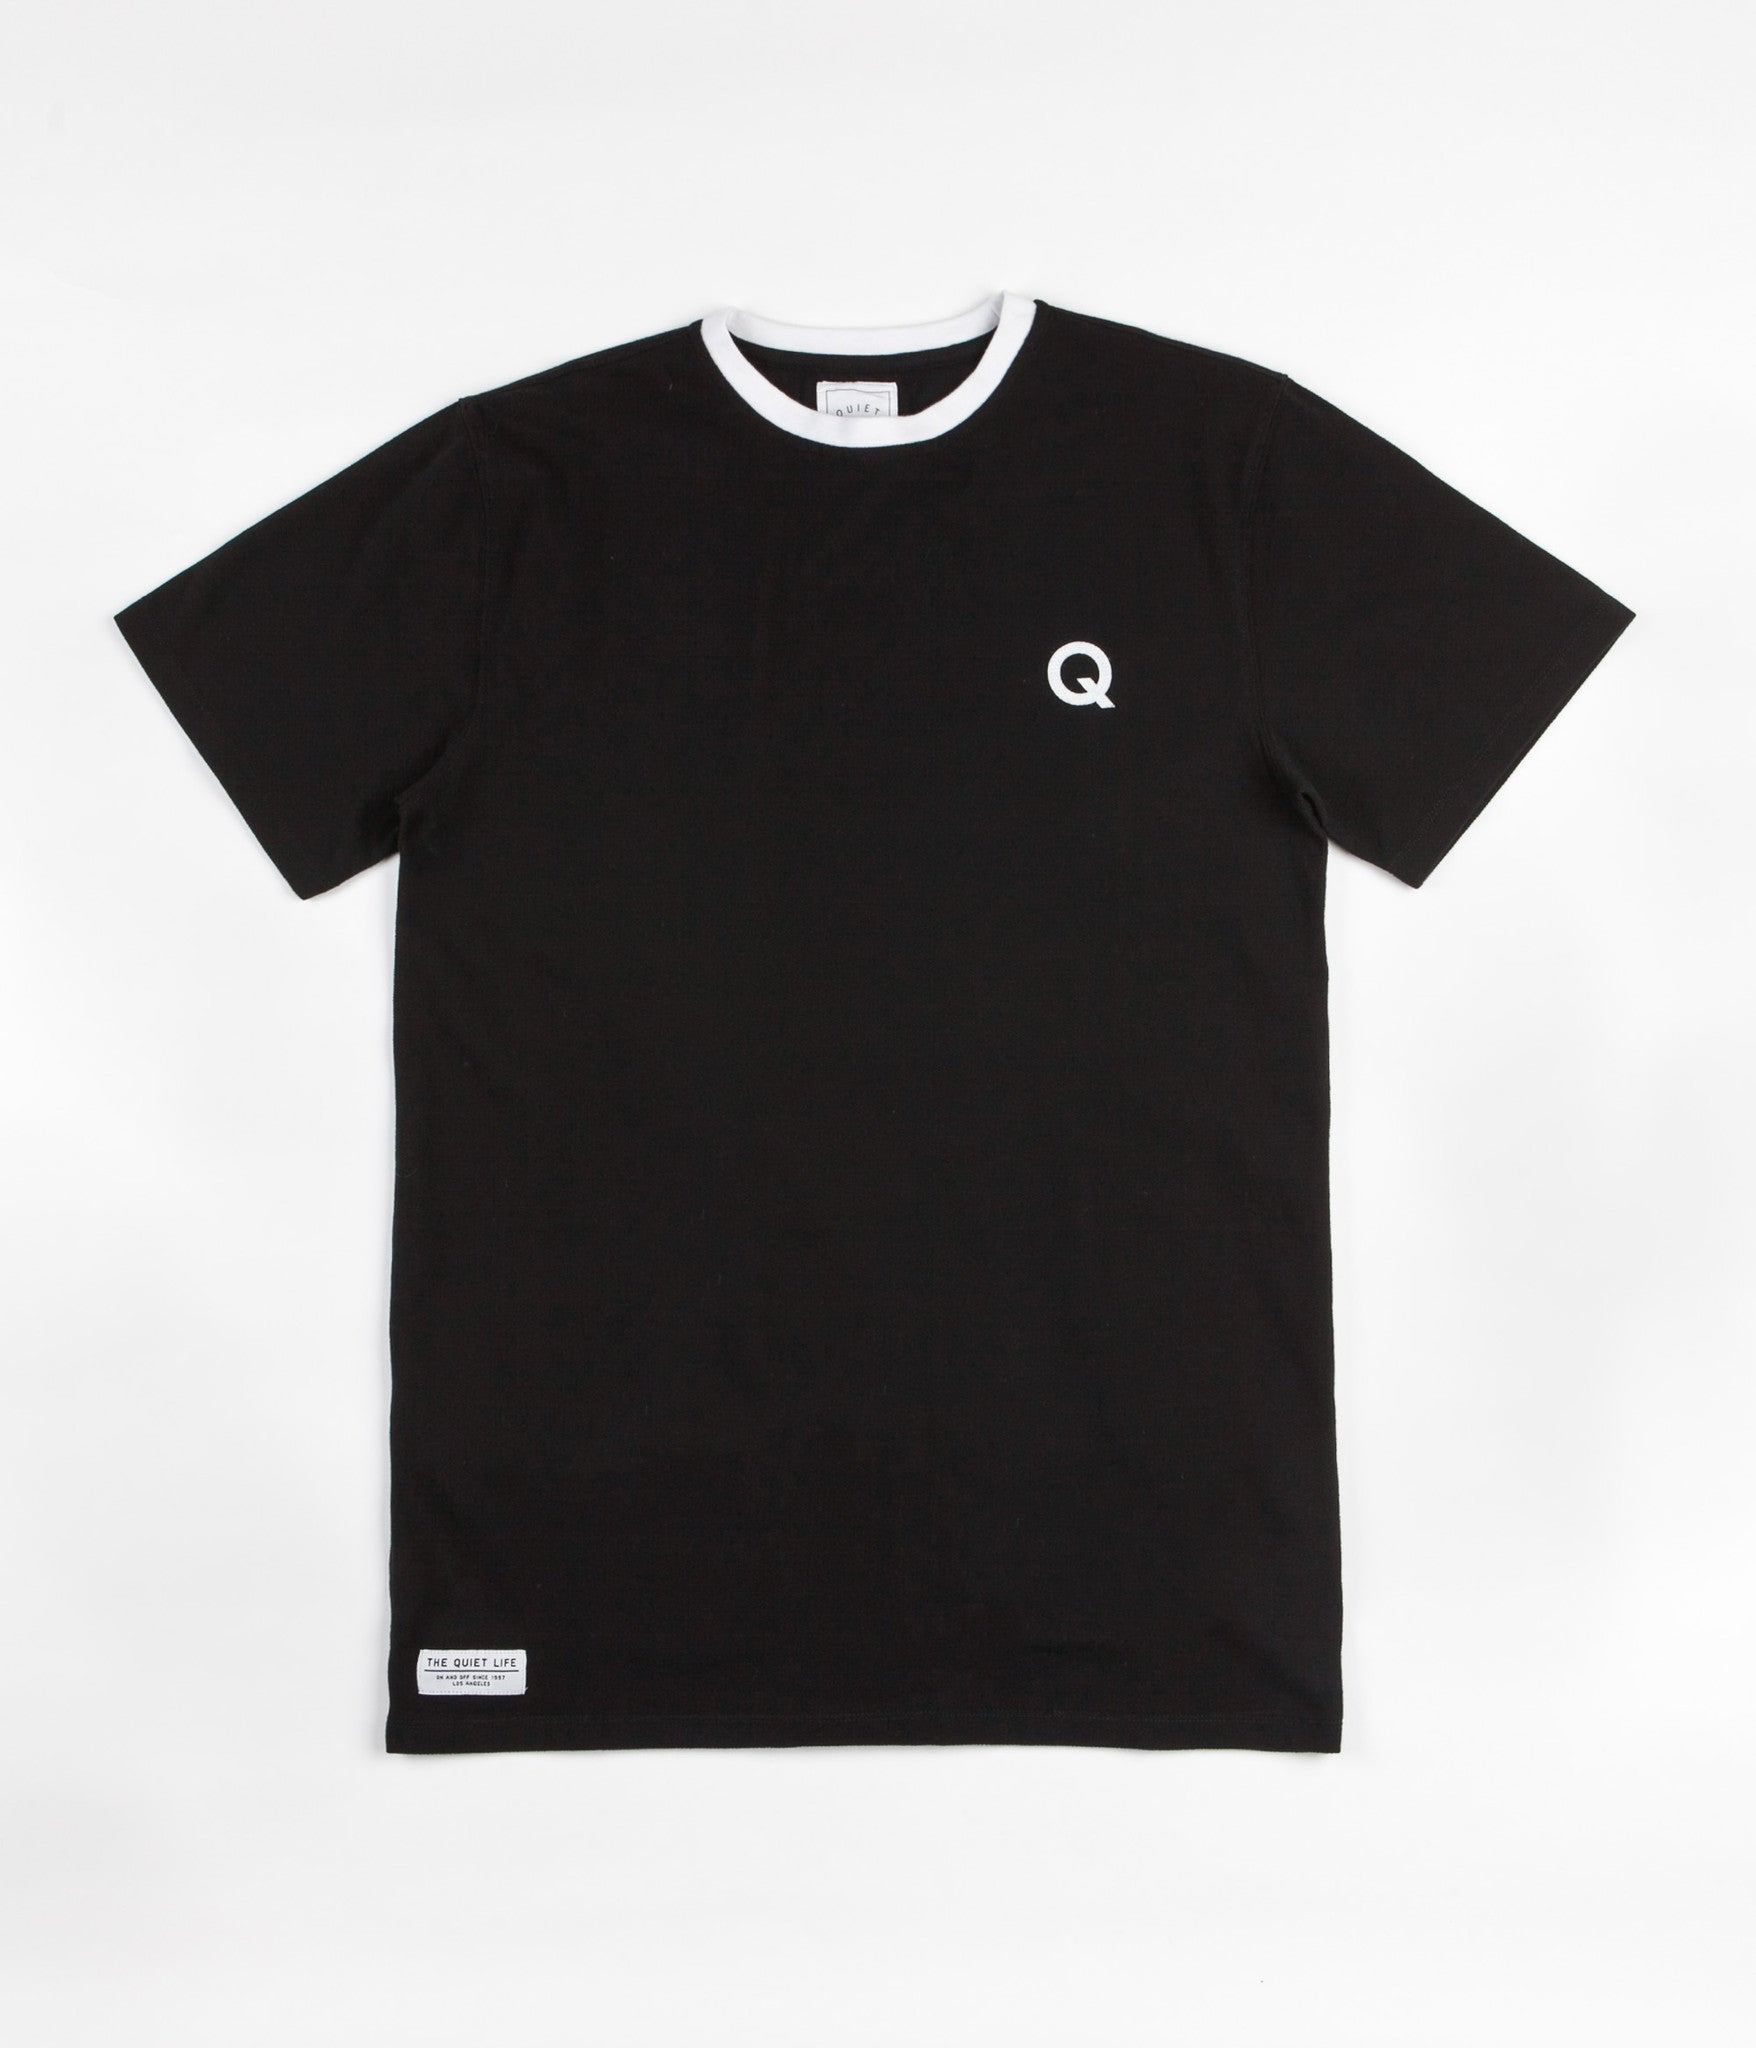 The Quiet Life Q Pique T-Shirt - Black